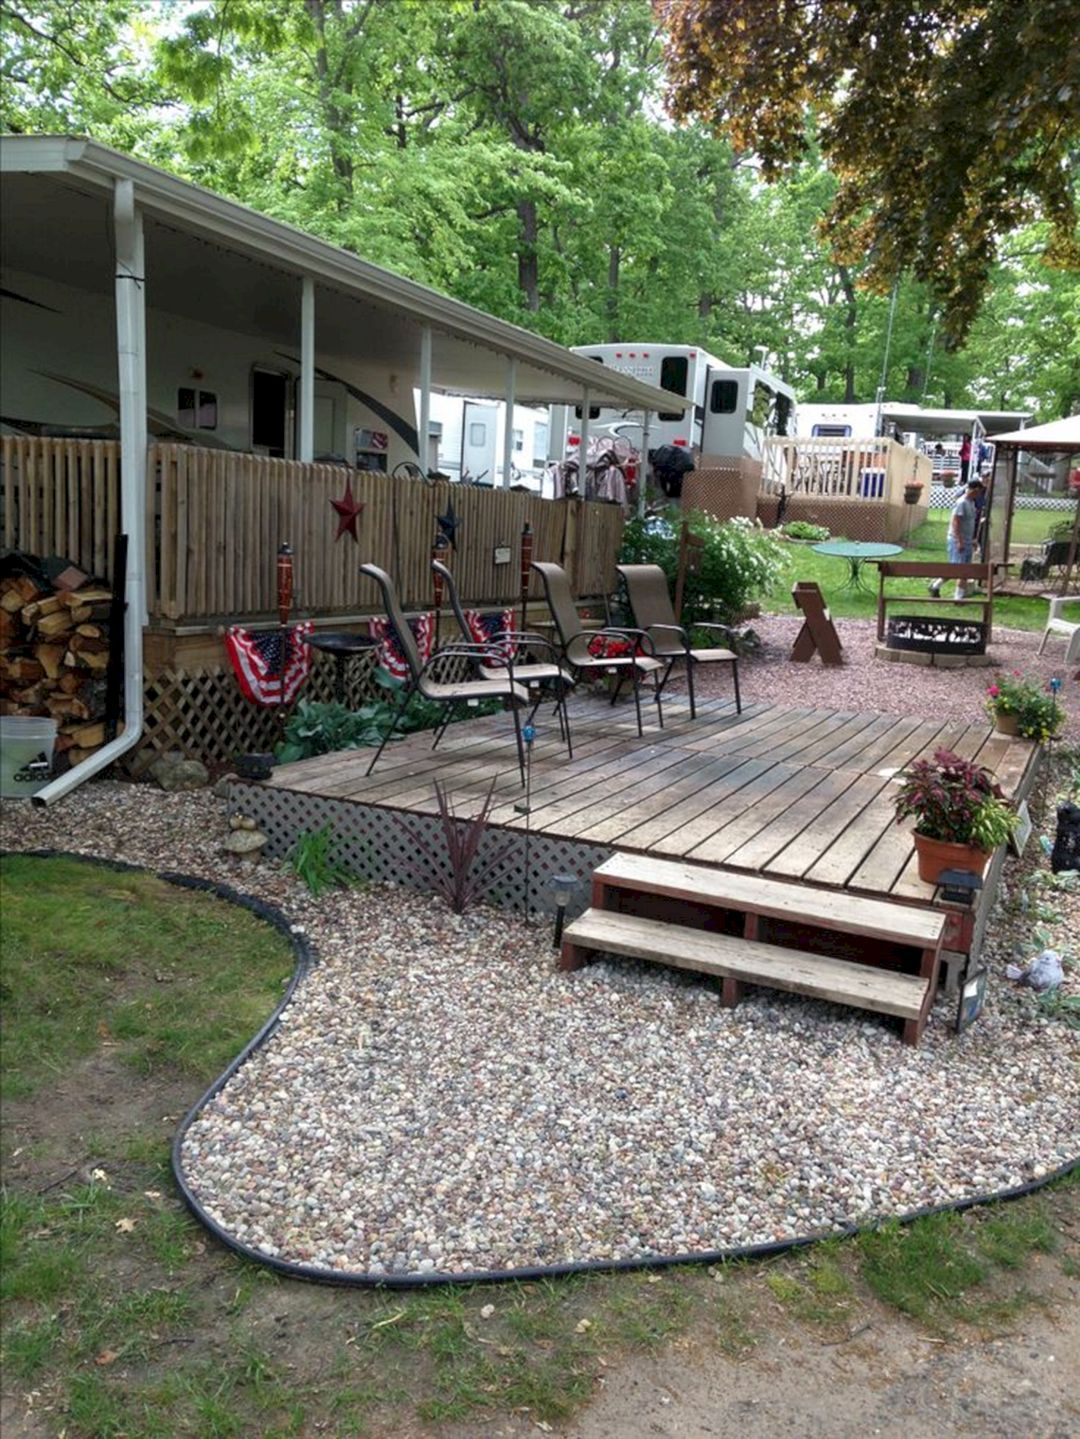 25 Wonderful Rv Camping Design Ideas For Summer Vacation Idees Camping Amenagement Paysager Mobilhome